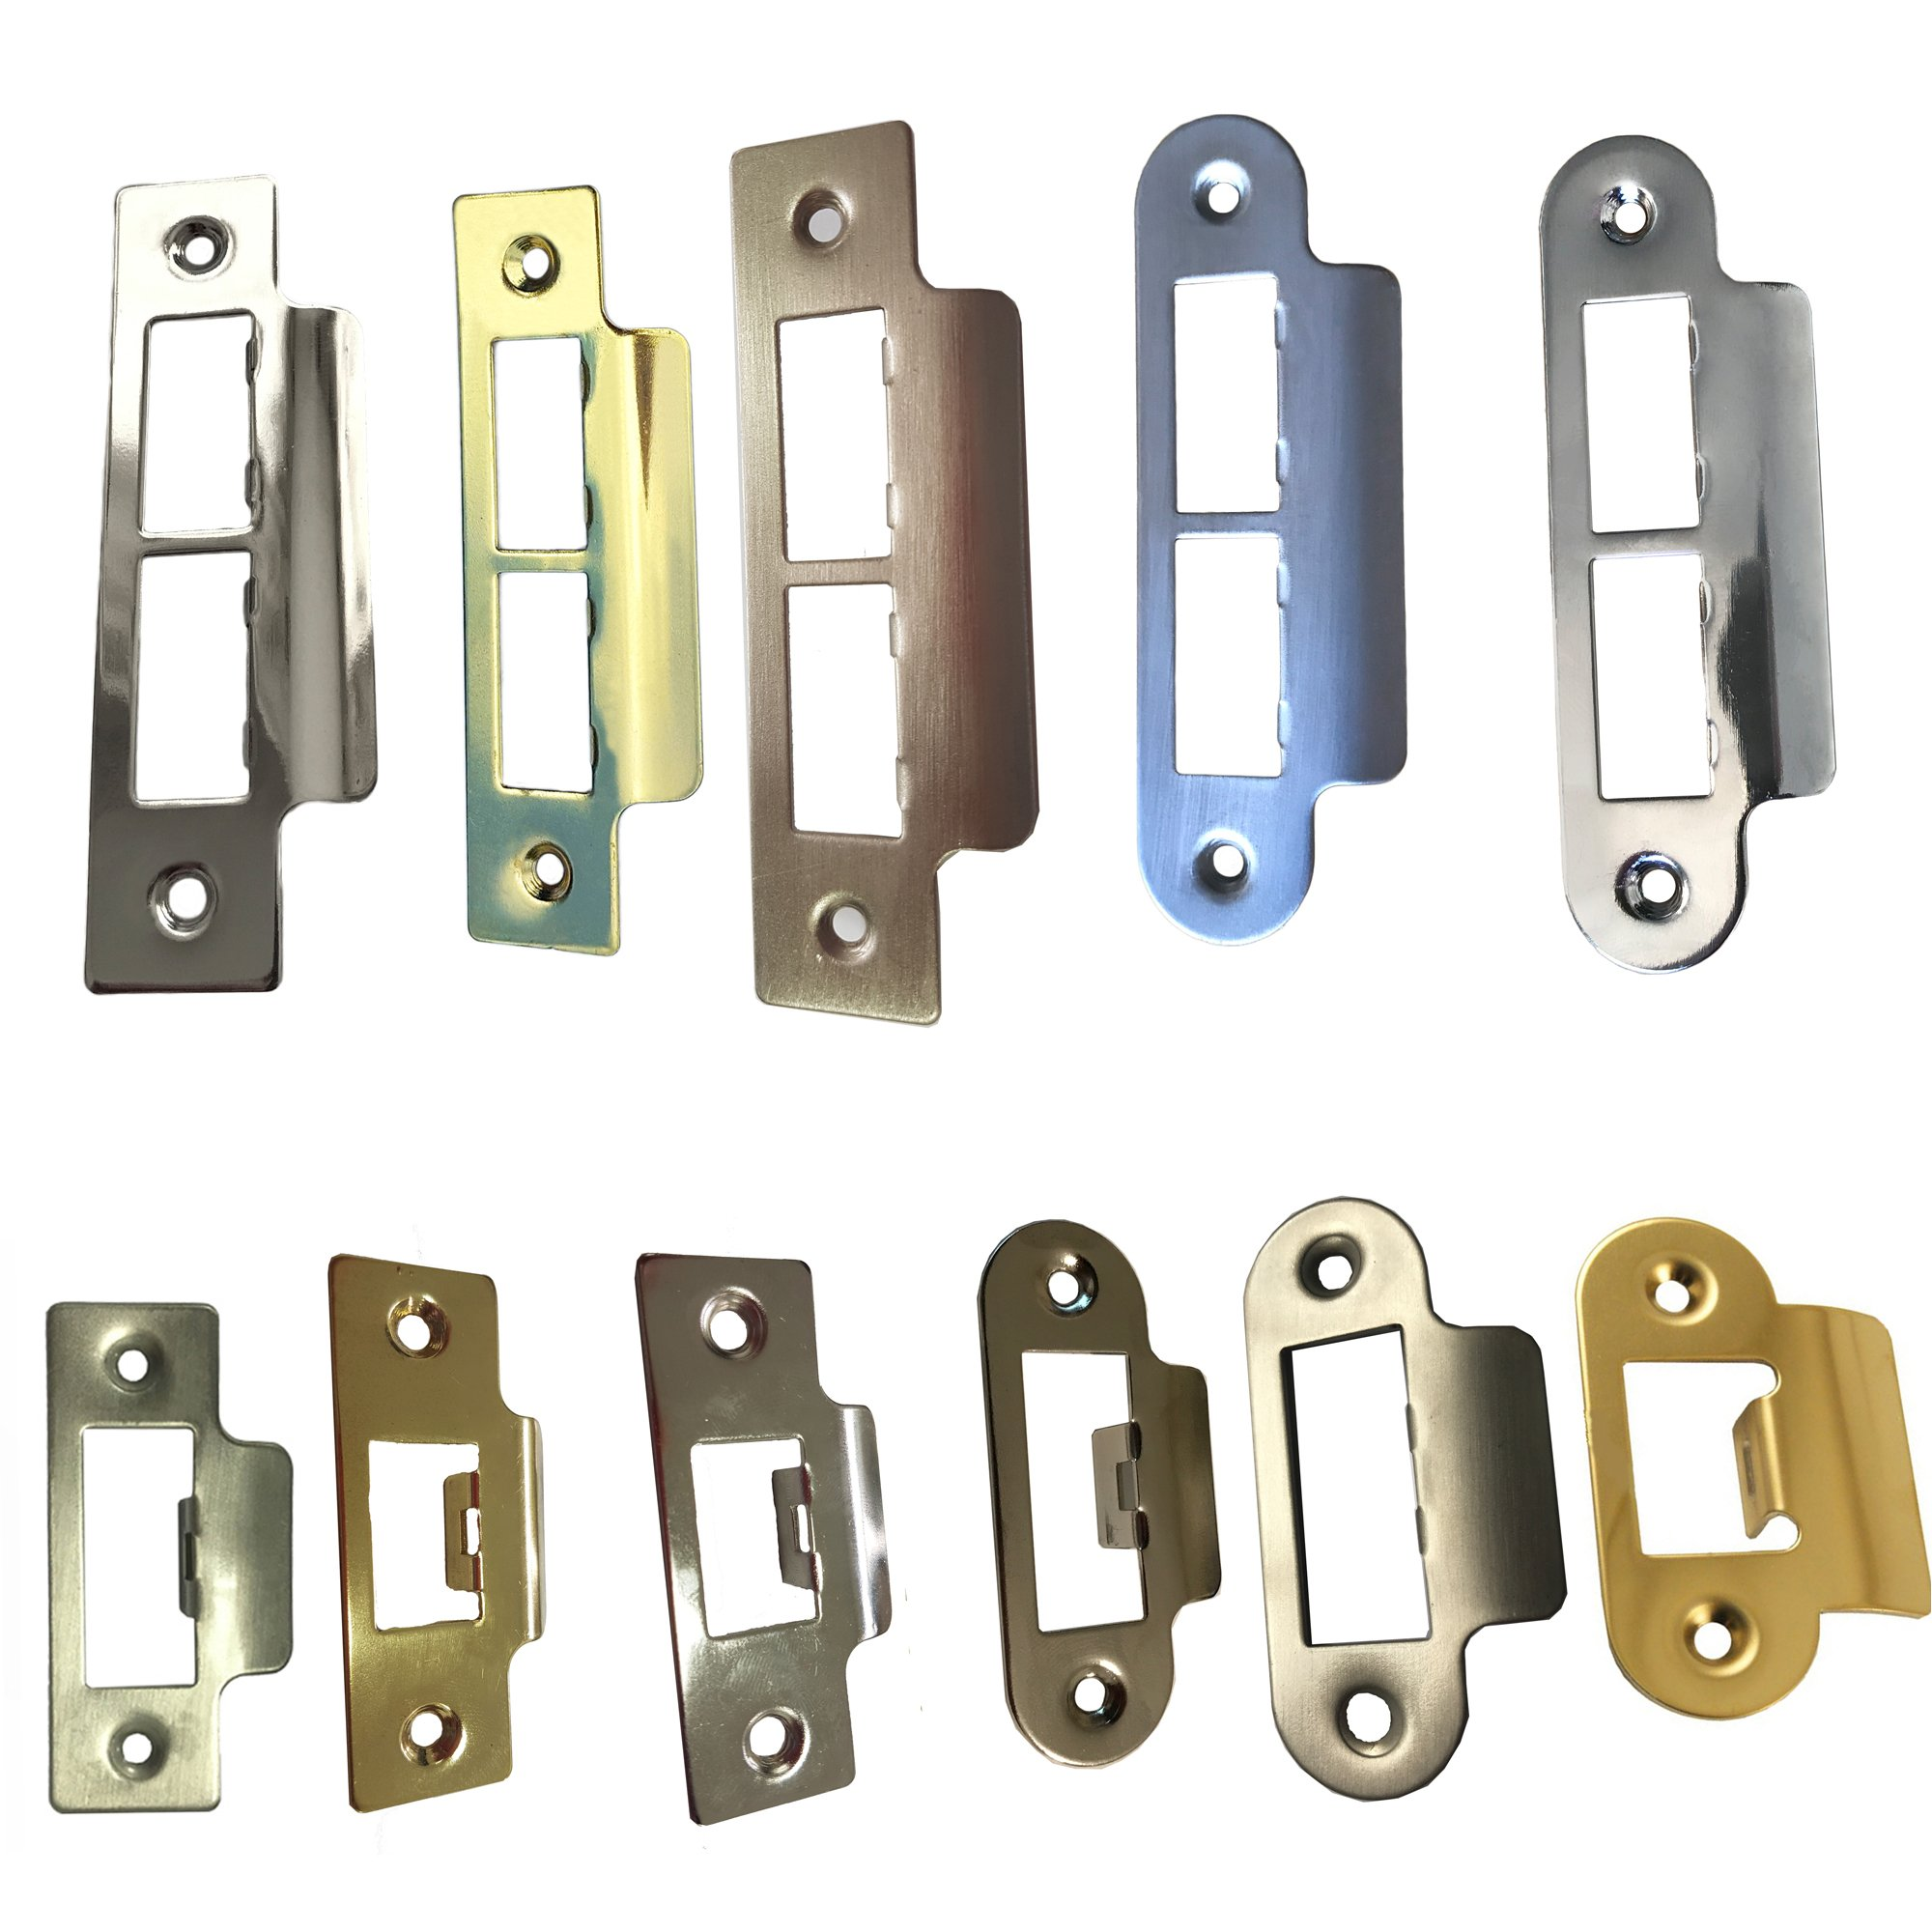 Door Strike Plate Polished Chrome Or Brass Long Plates Tubular Mortice Latch Universal Hardware